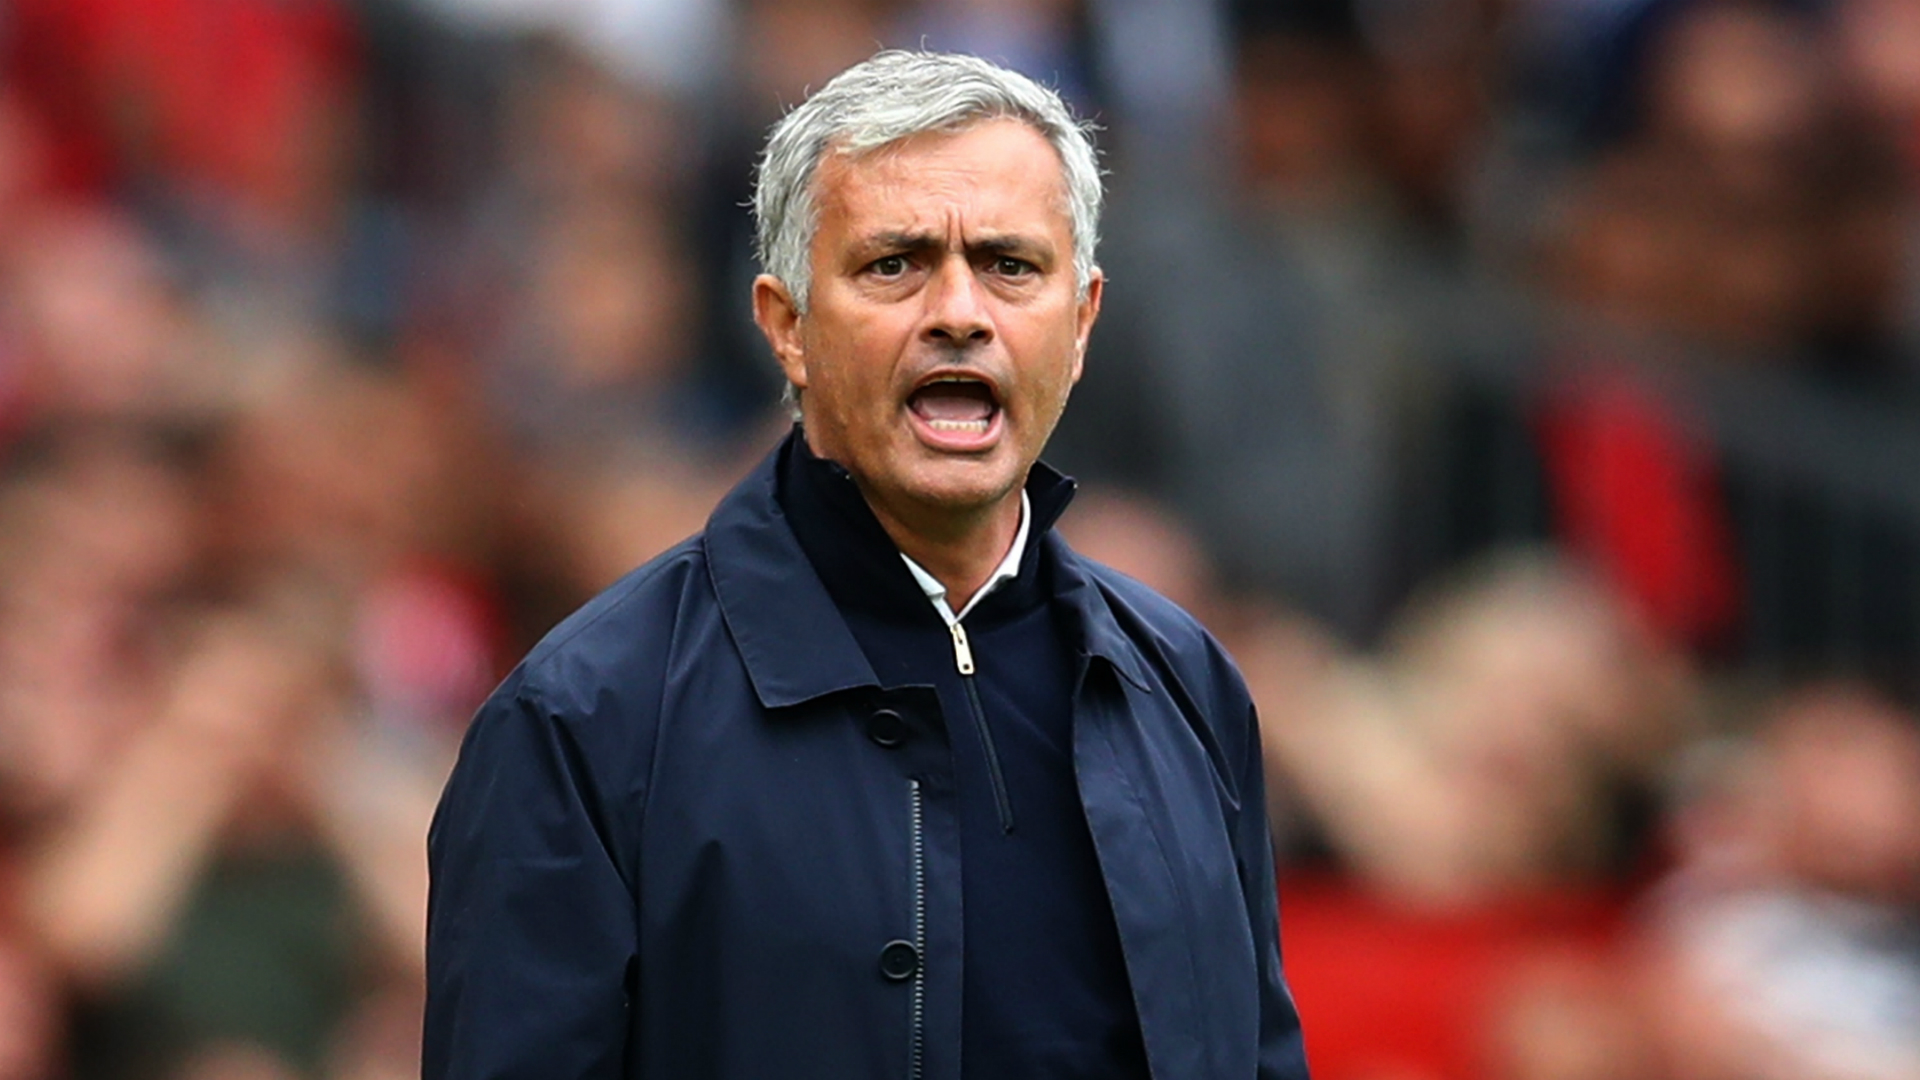 Spurs appoint Mourinho: A risk worth taking for Jose